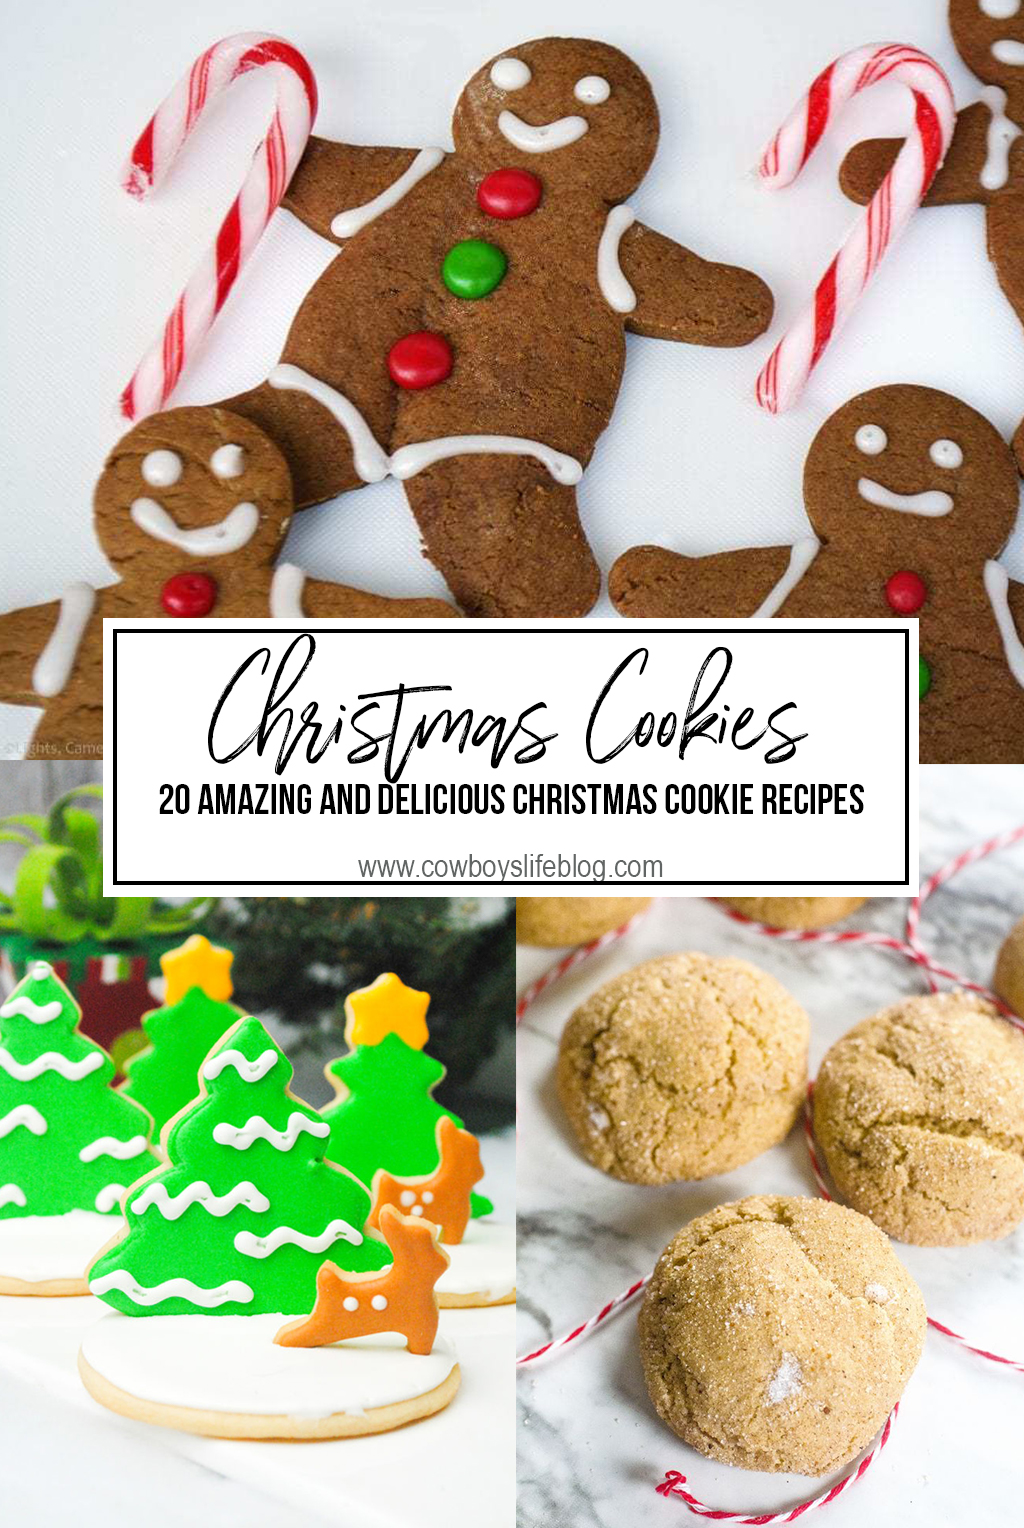 20 Amazing Christmas Cookie Recipes